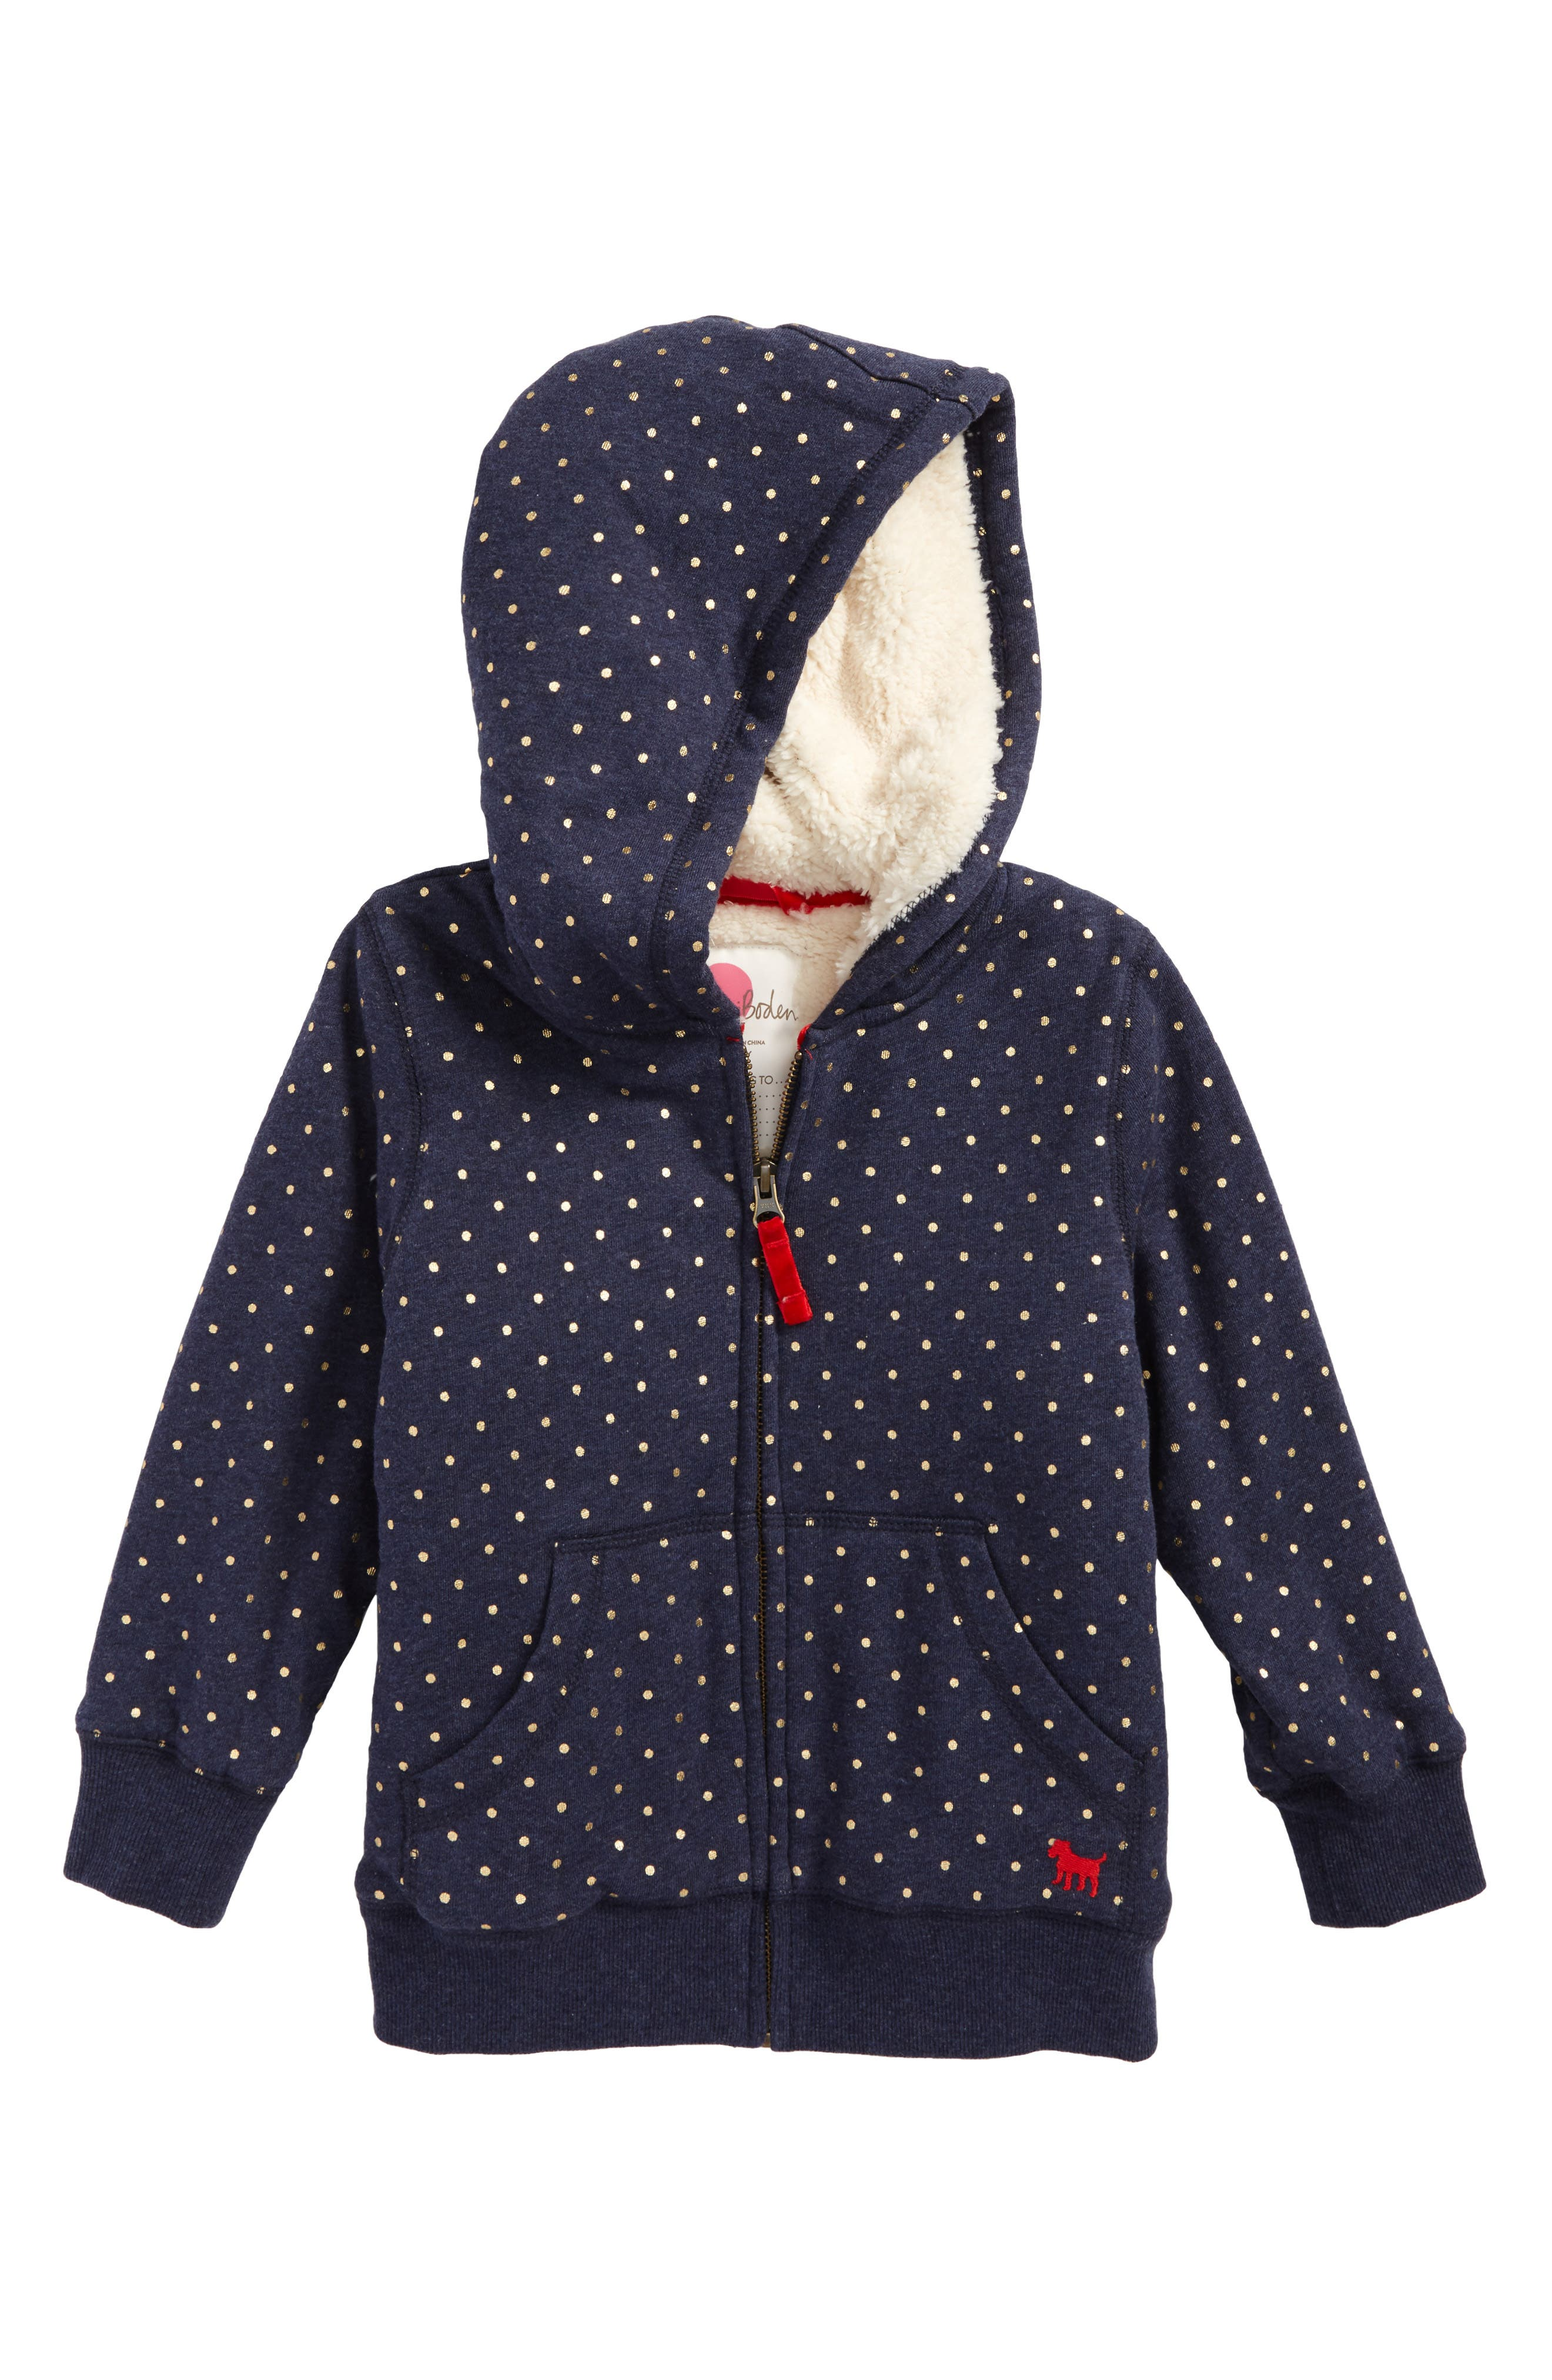 Boden Print Shaggy Lined Hoodie,                             Main thumbnail 1, color,